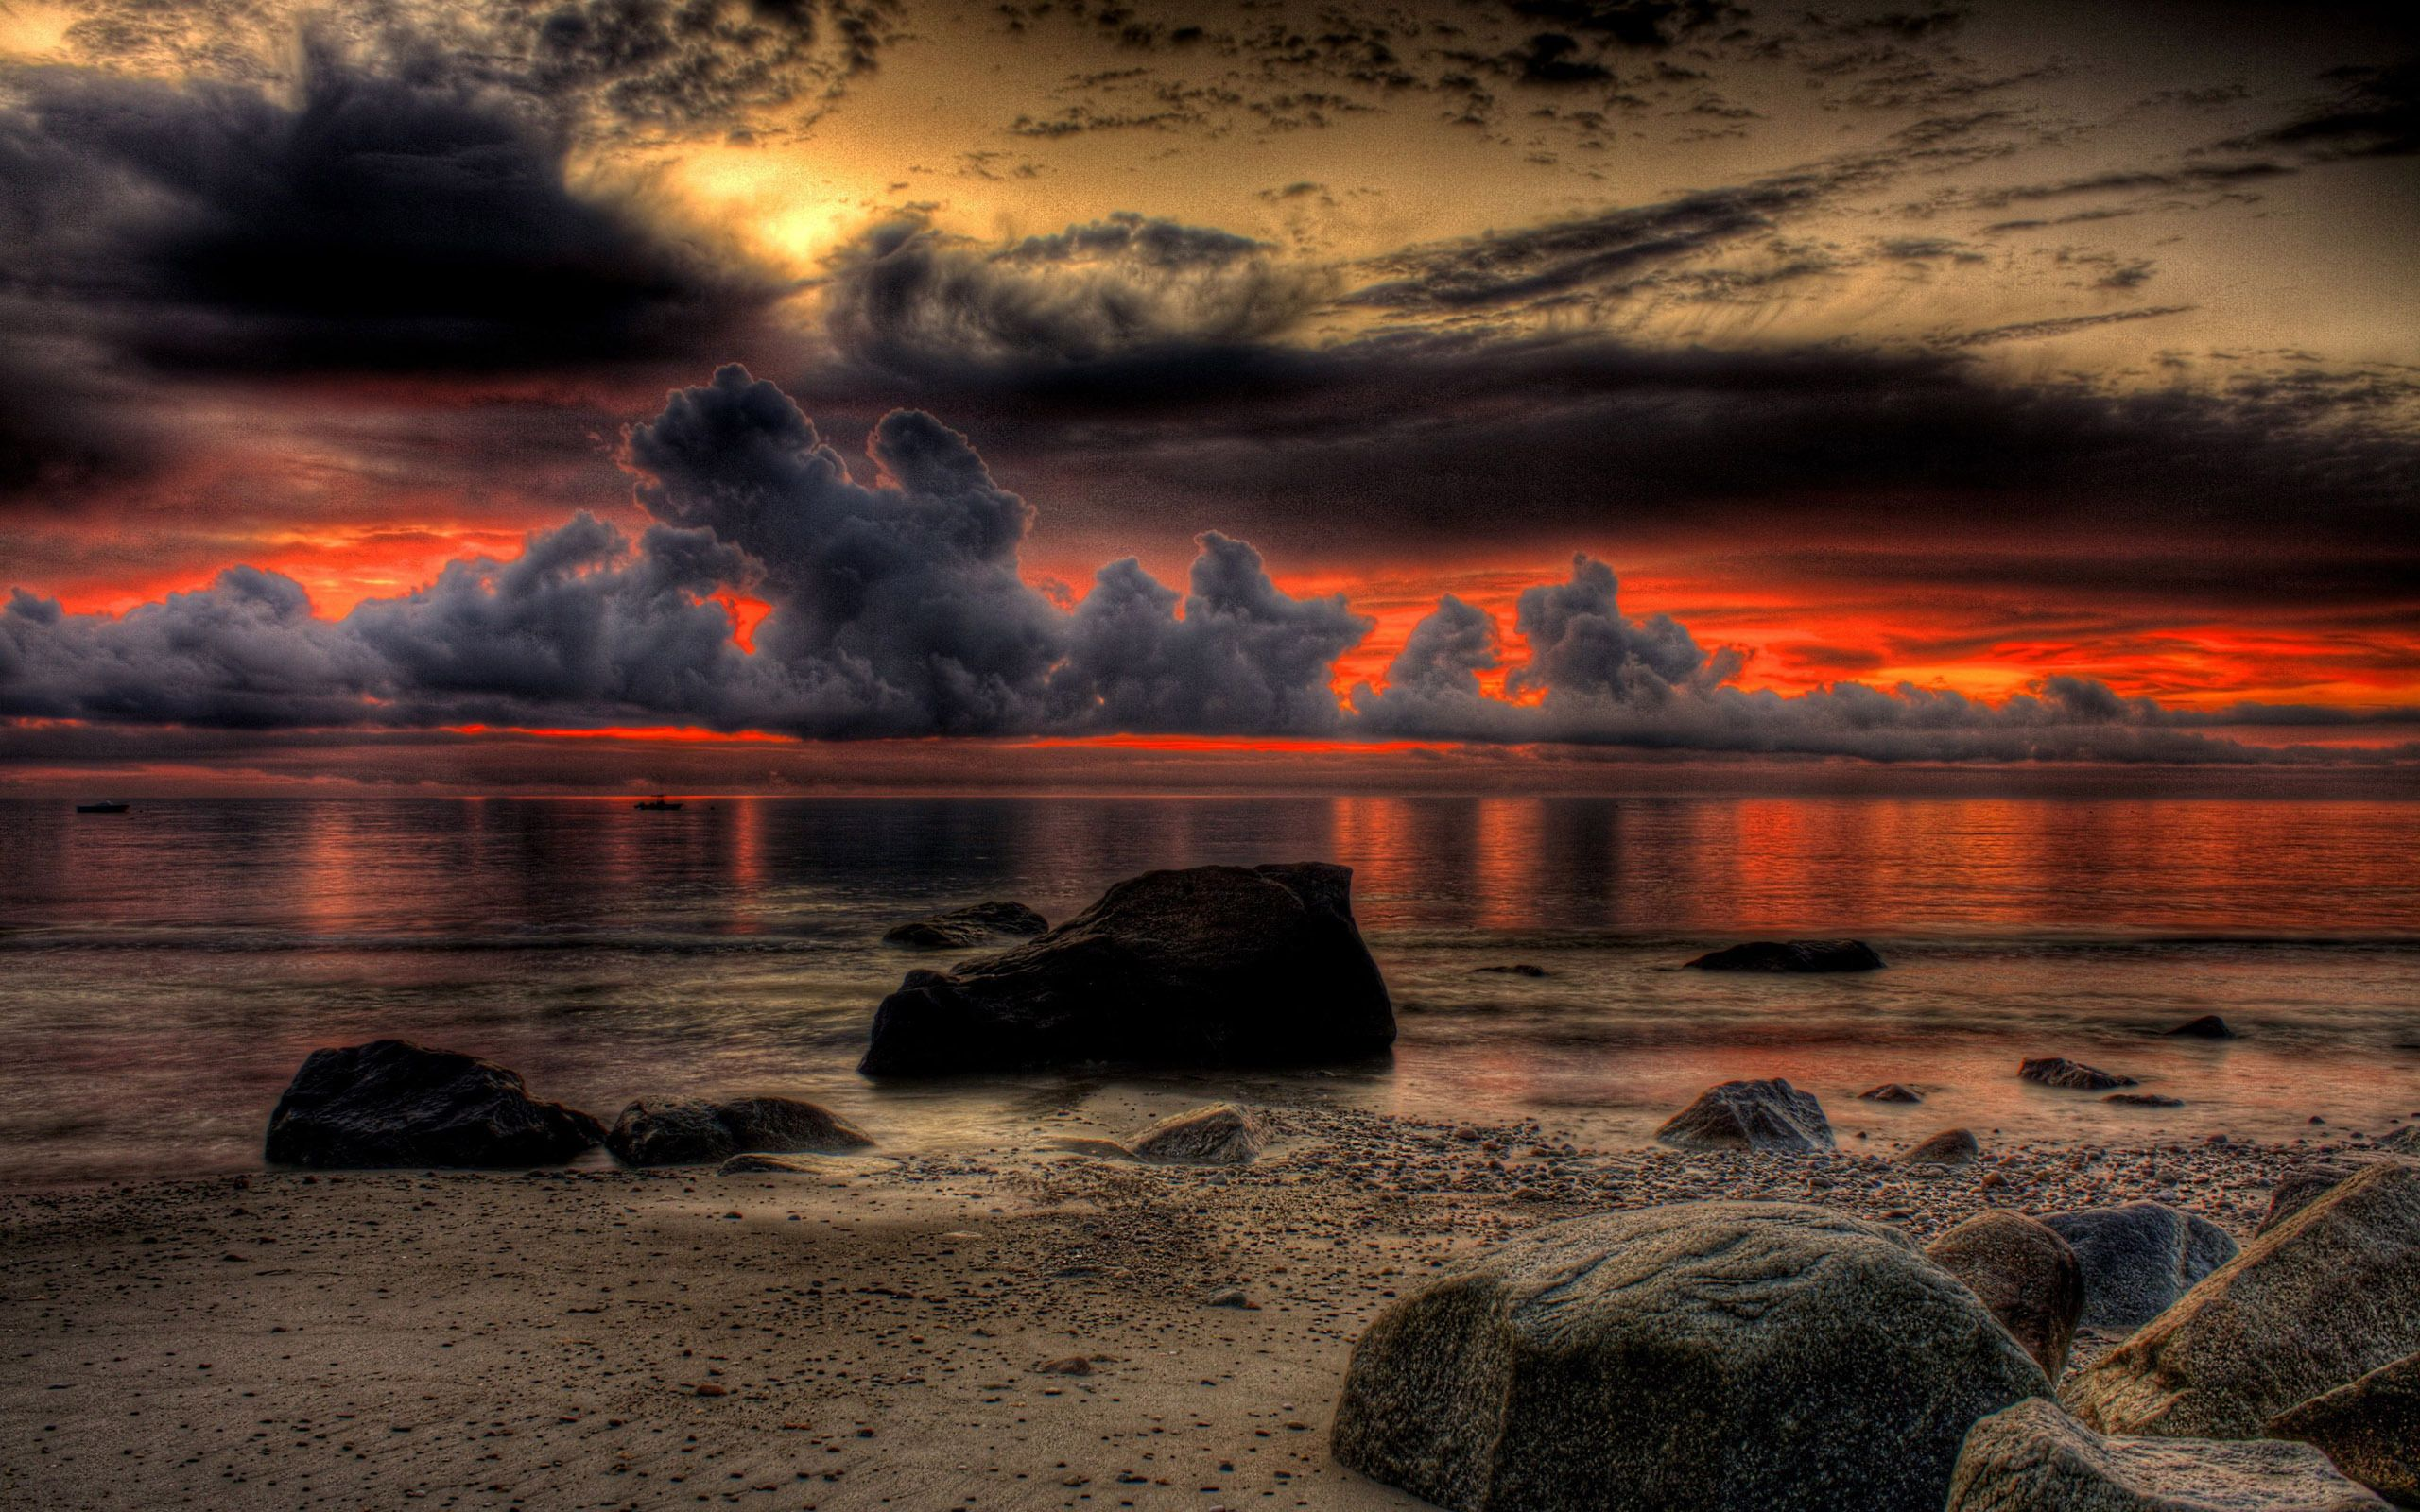 Download Wallpaper 1920x1080 Sea Sky Sunset Clouds Rocks Surf Full Hd 1080p Hd Background Seascape Photography Water Sunset Sunset